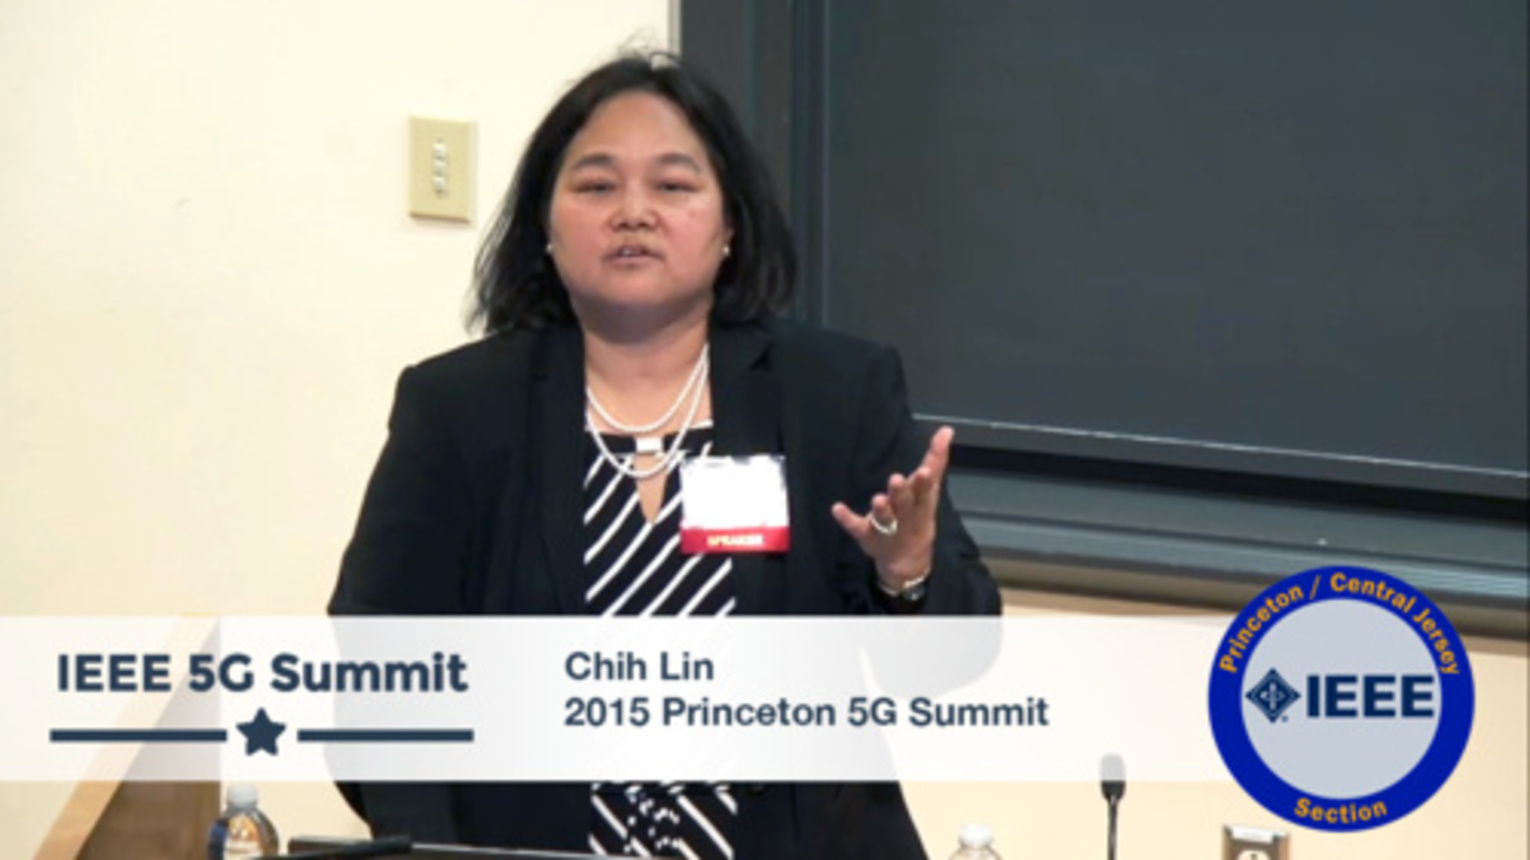 Princeton 5G Summit - Chih-Lin I Keynote - The World at Your Fingertips